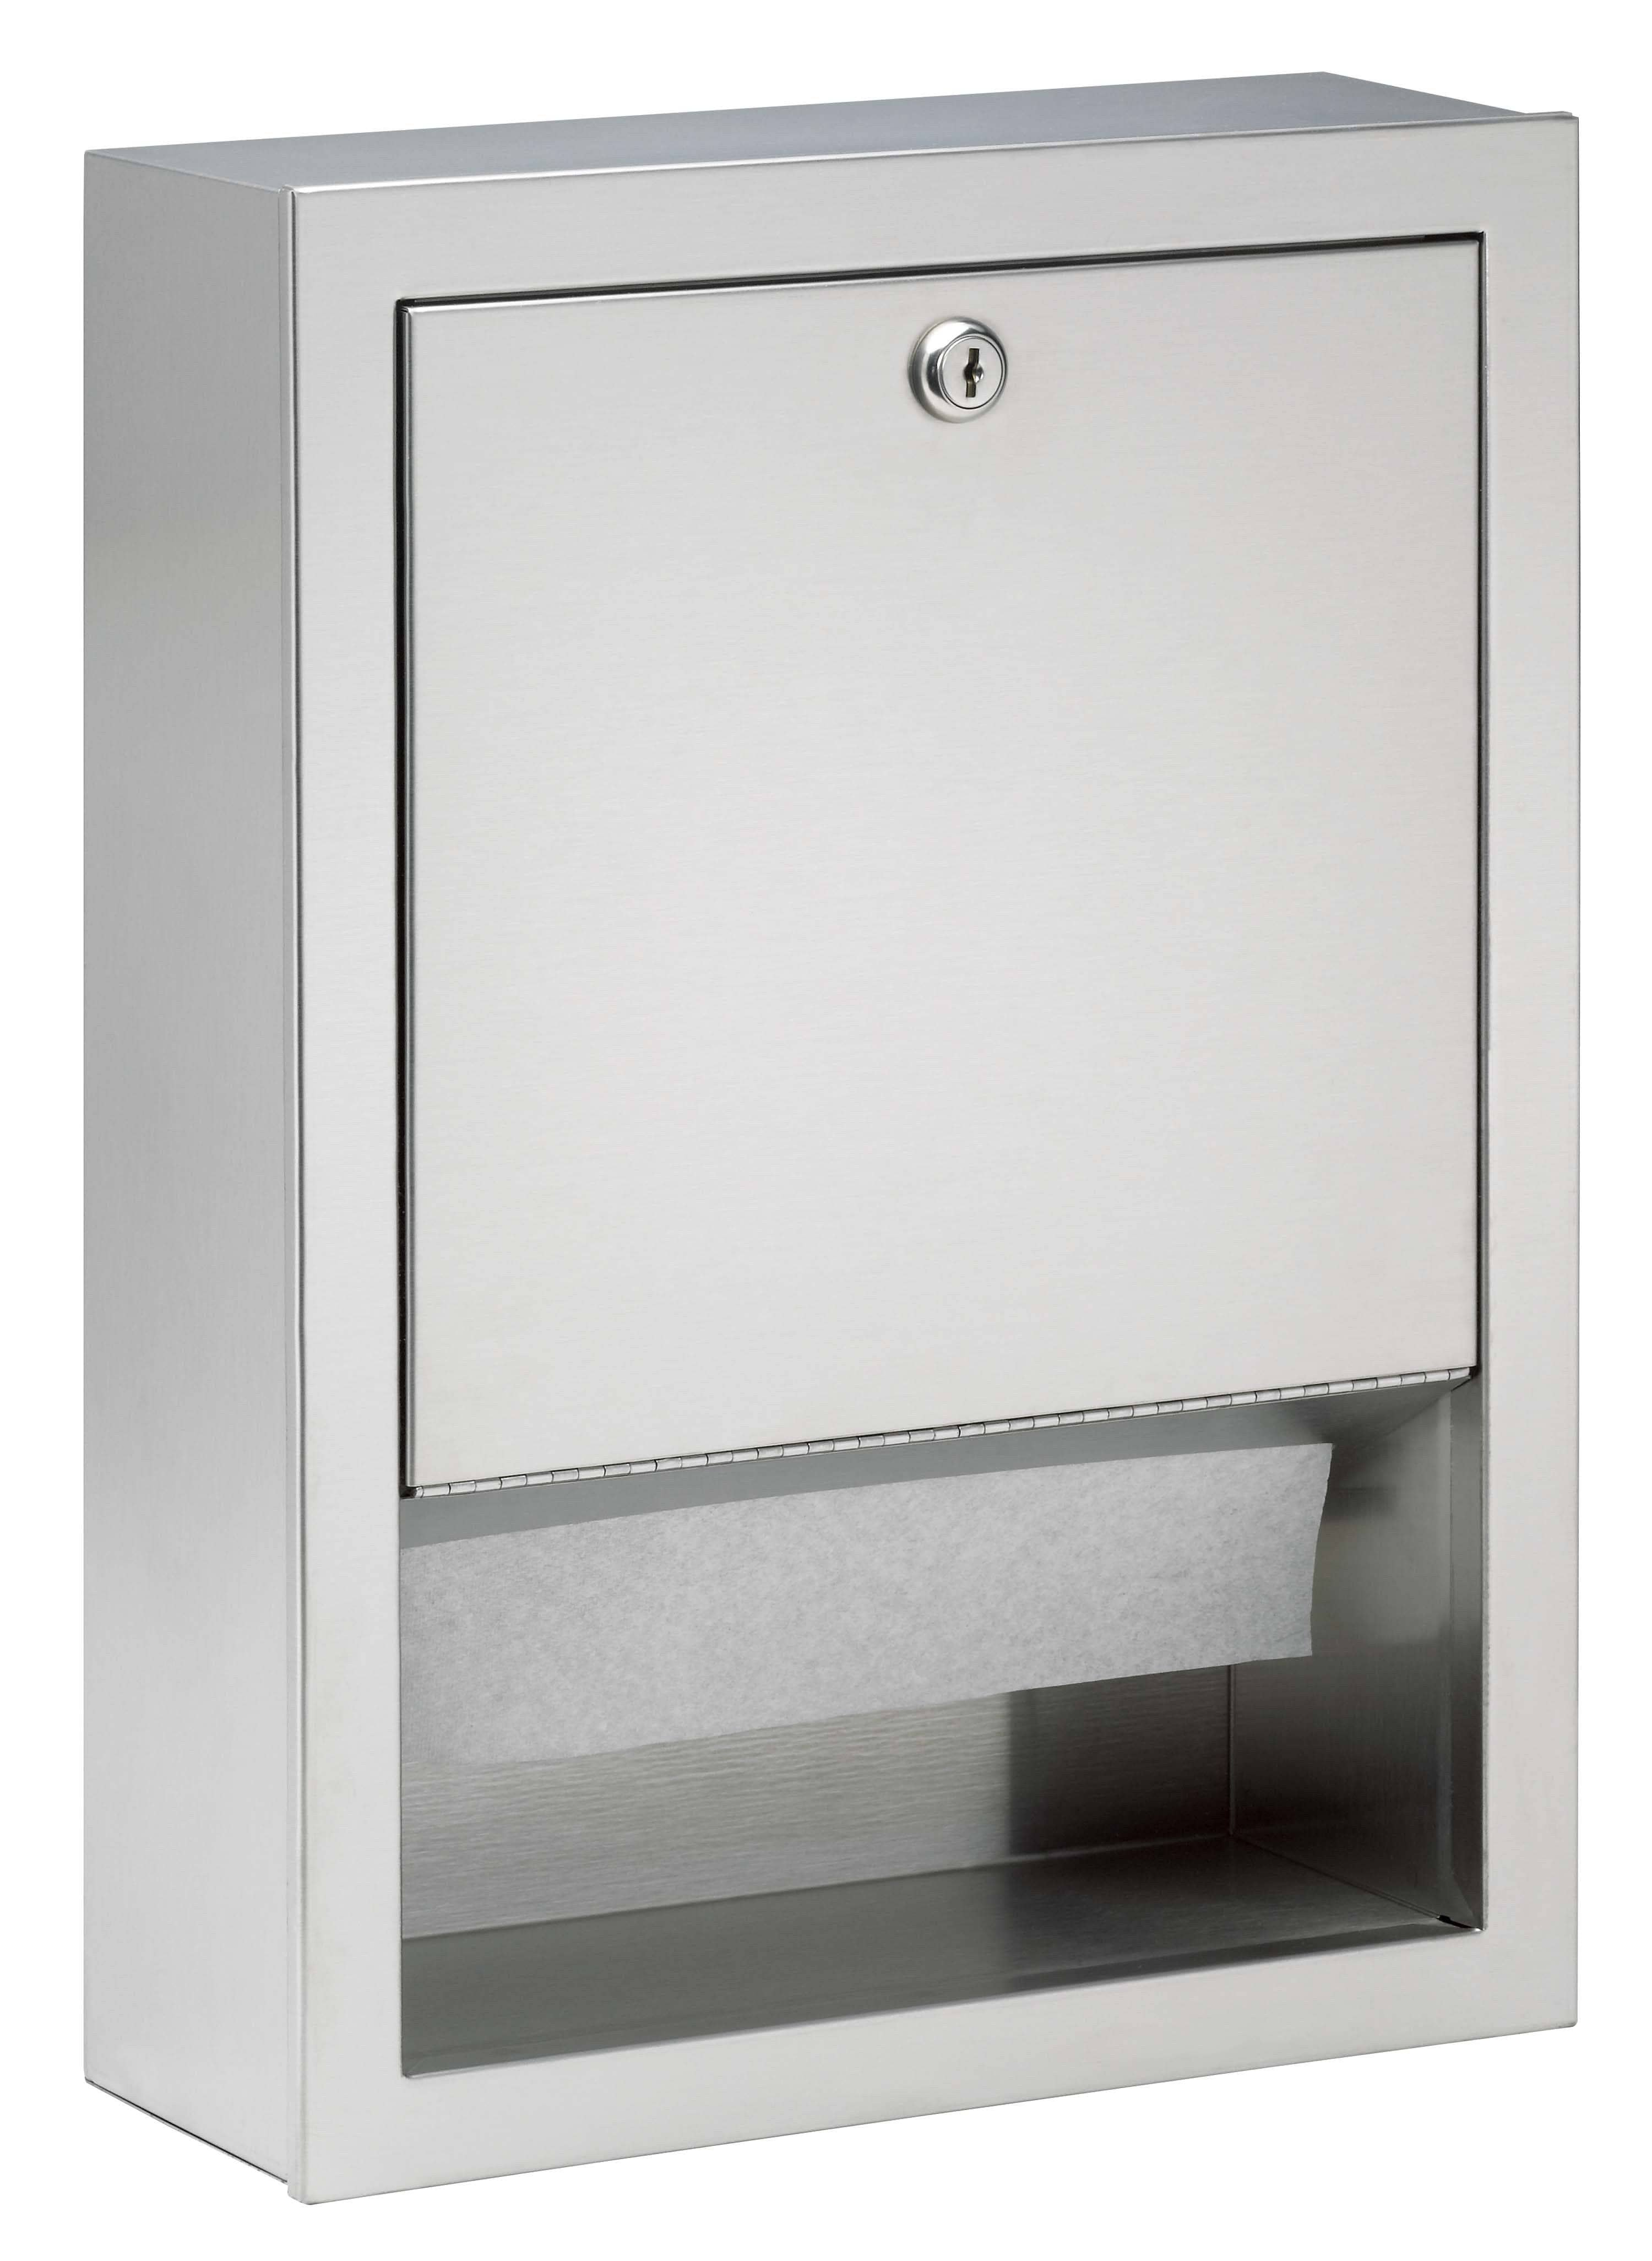 Bradley 2441-00 Commercial BX-Paper Towel Dispenser, Recessed-Mounted, Stainless Steel - TotalRestroom.com